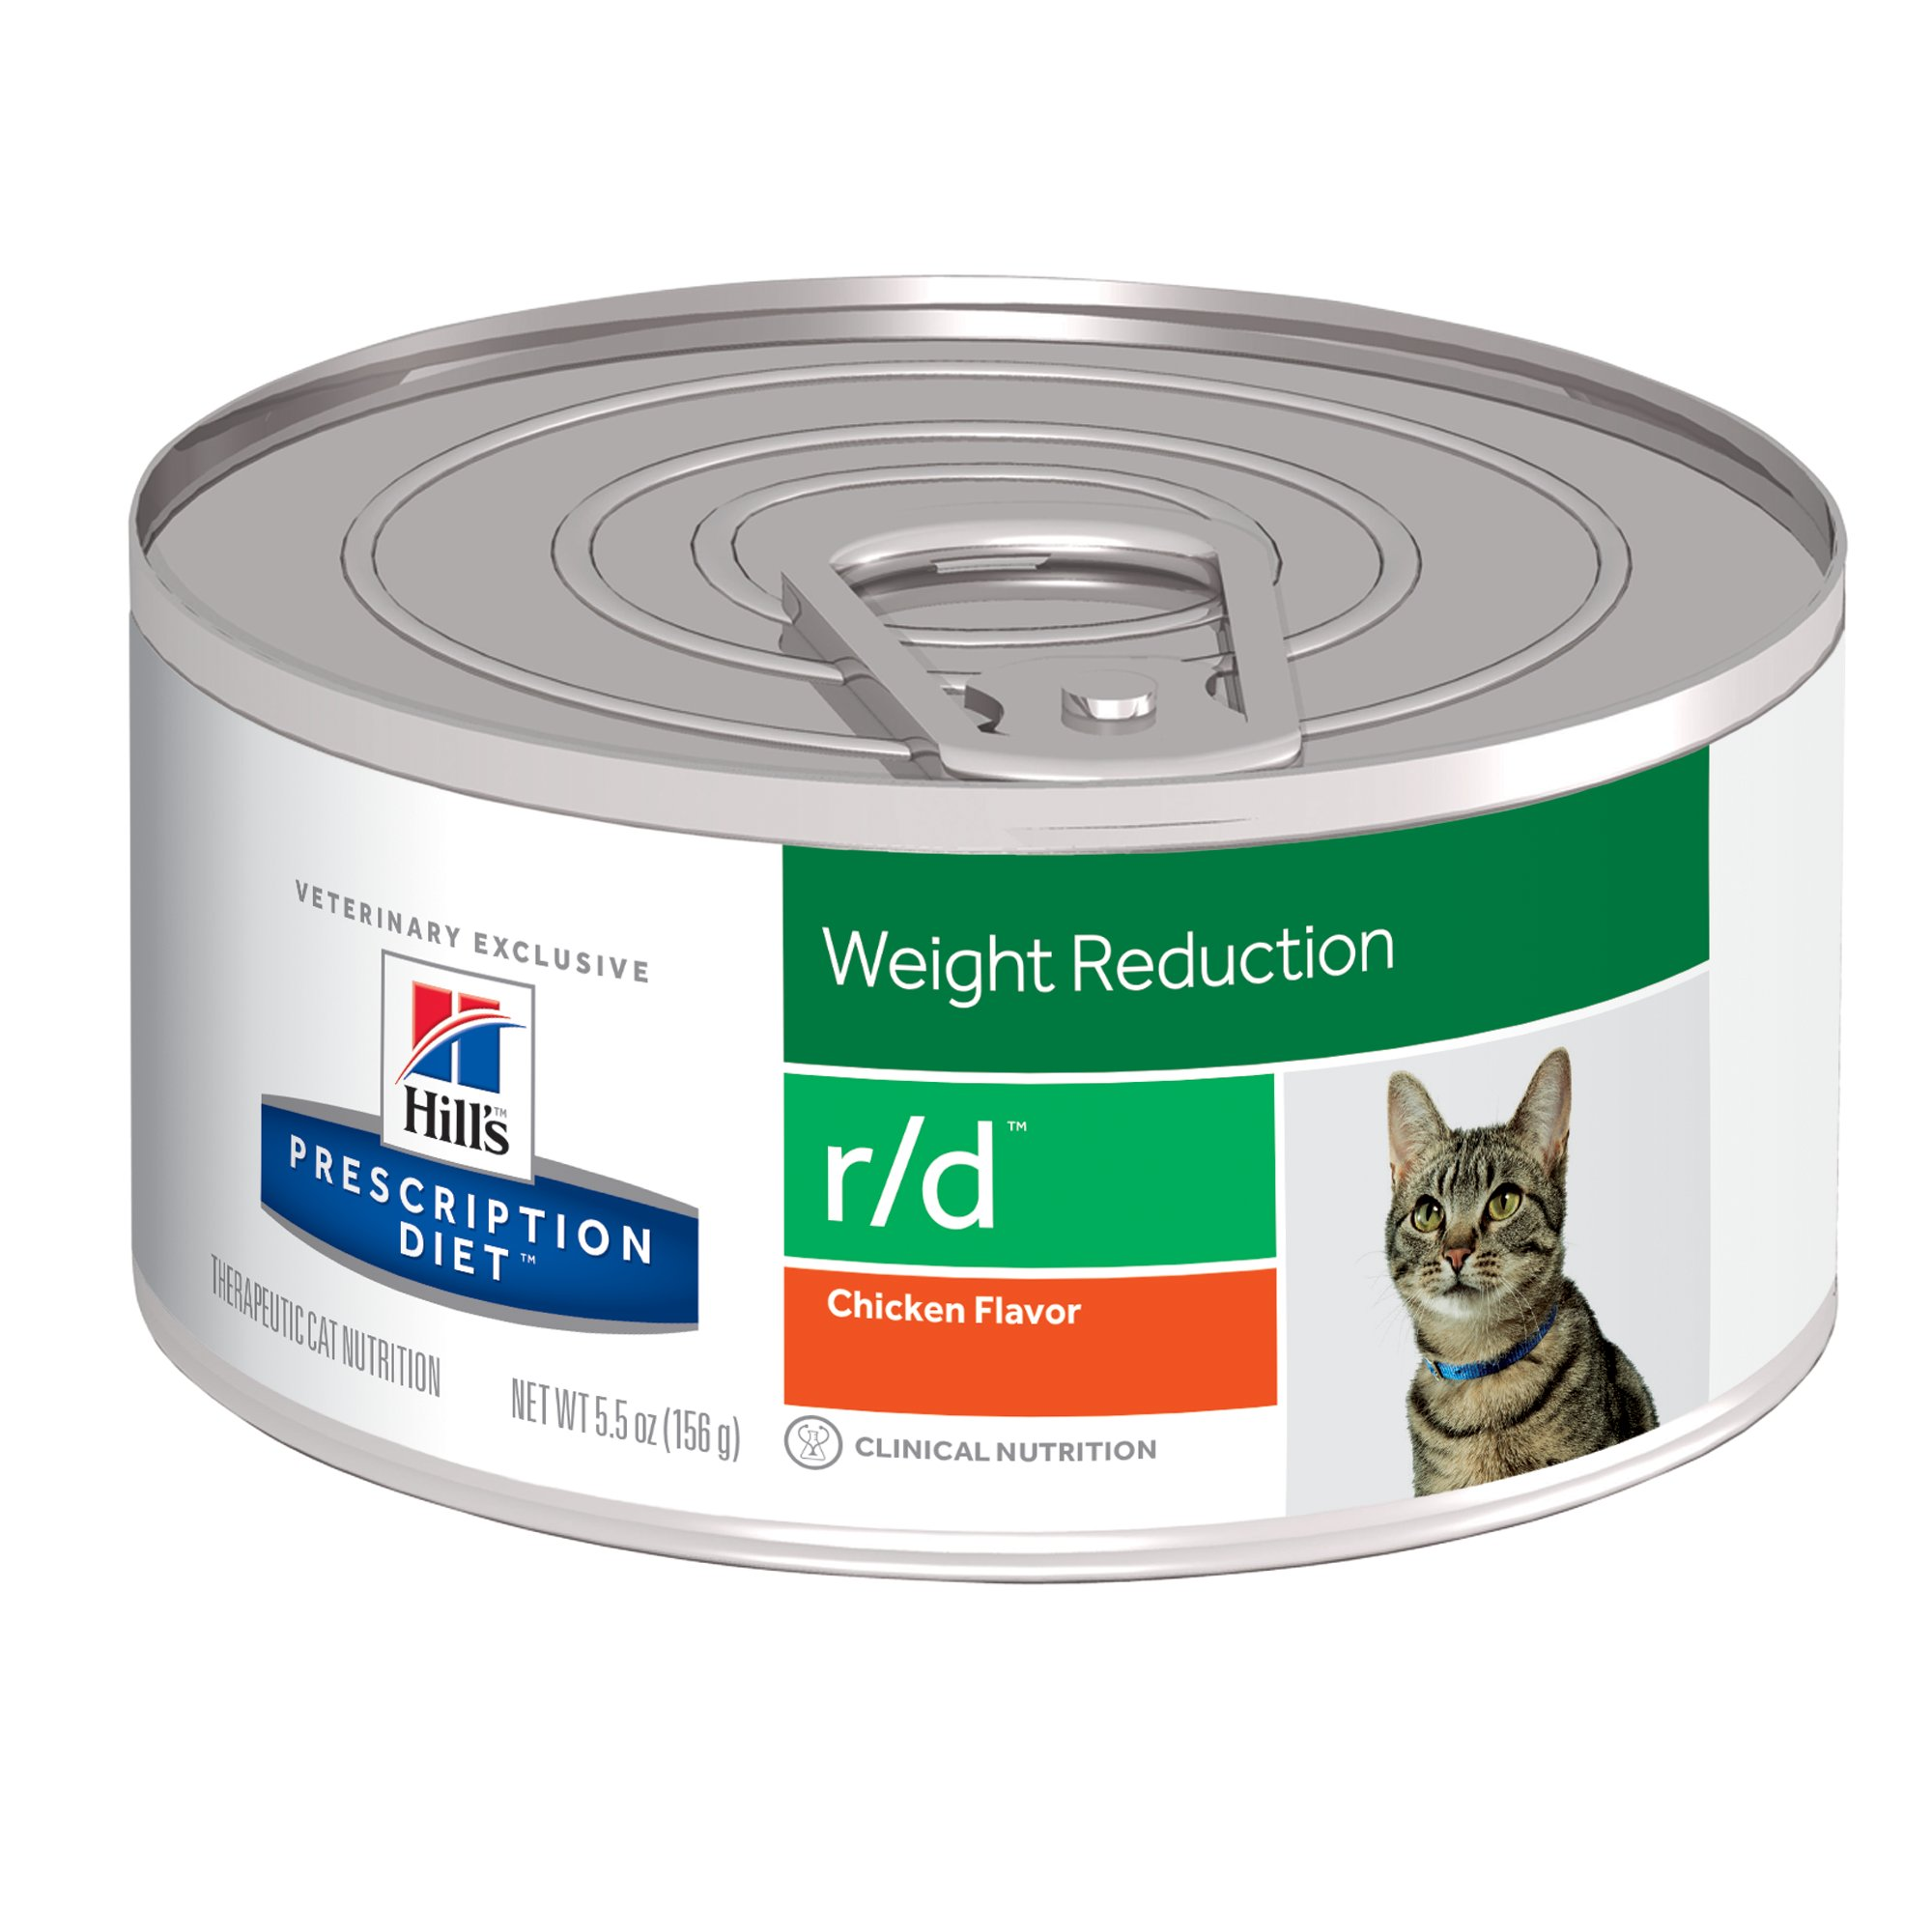 Weight Reduction Cat Food Canned